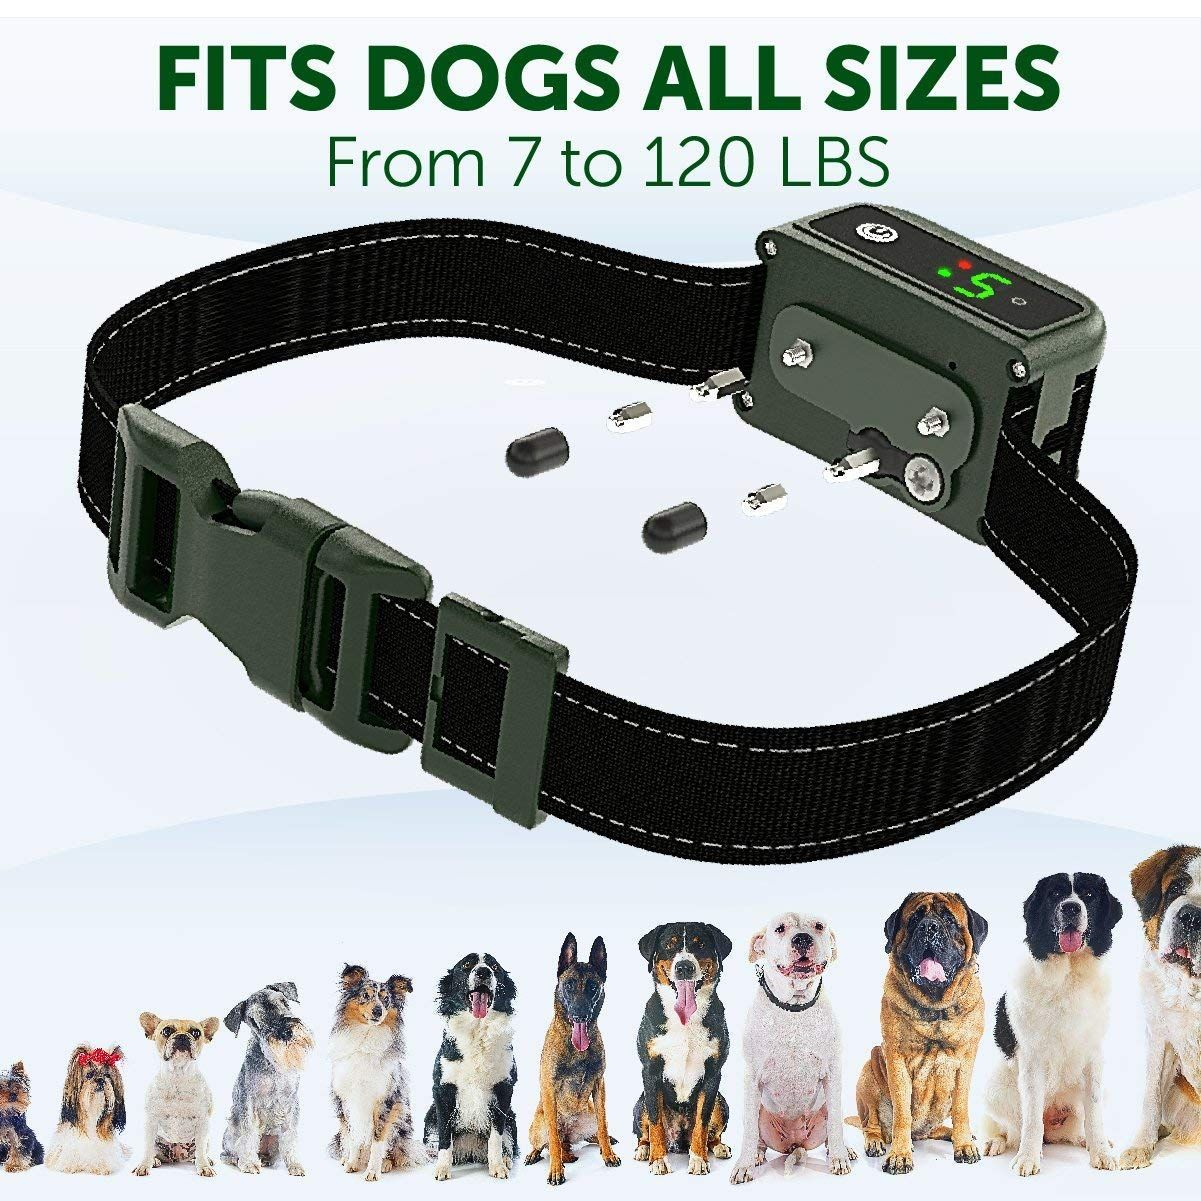 Tbi Pro Newest 2019 Rechargeable Bark Collar Upgraded Smart